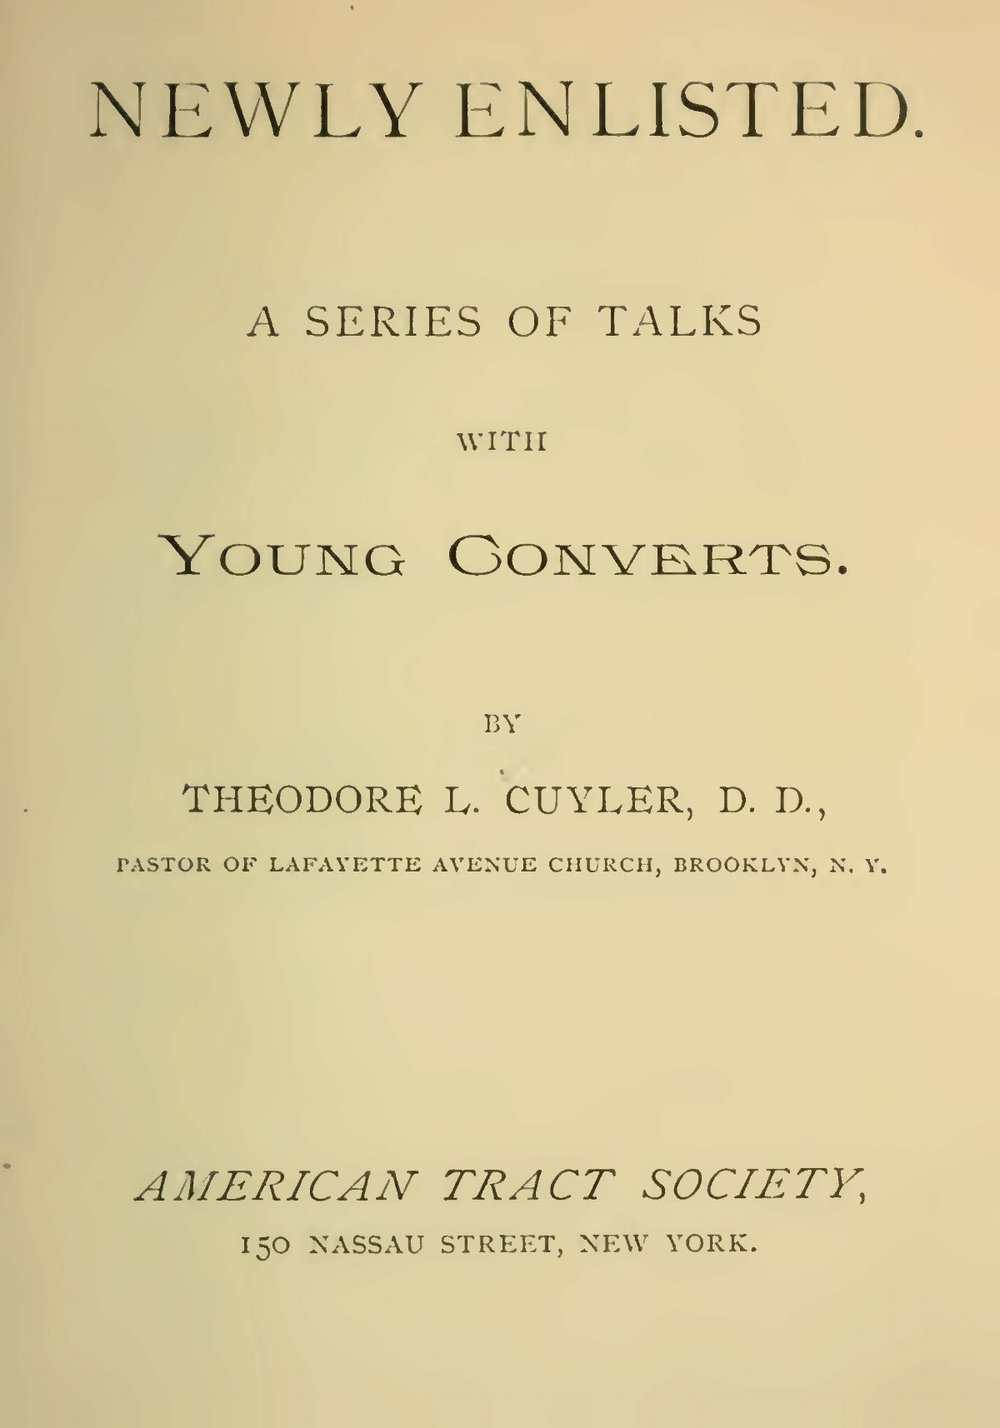 Cuyler, Theodore Ledyard, Newly Enlisted Title Page.jpg